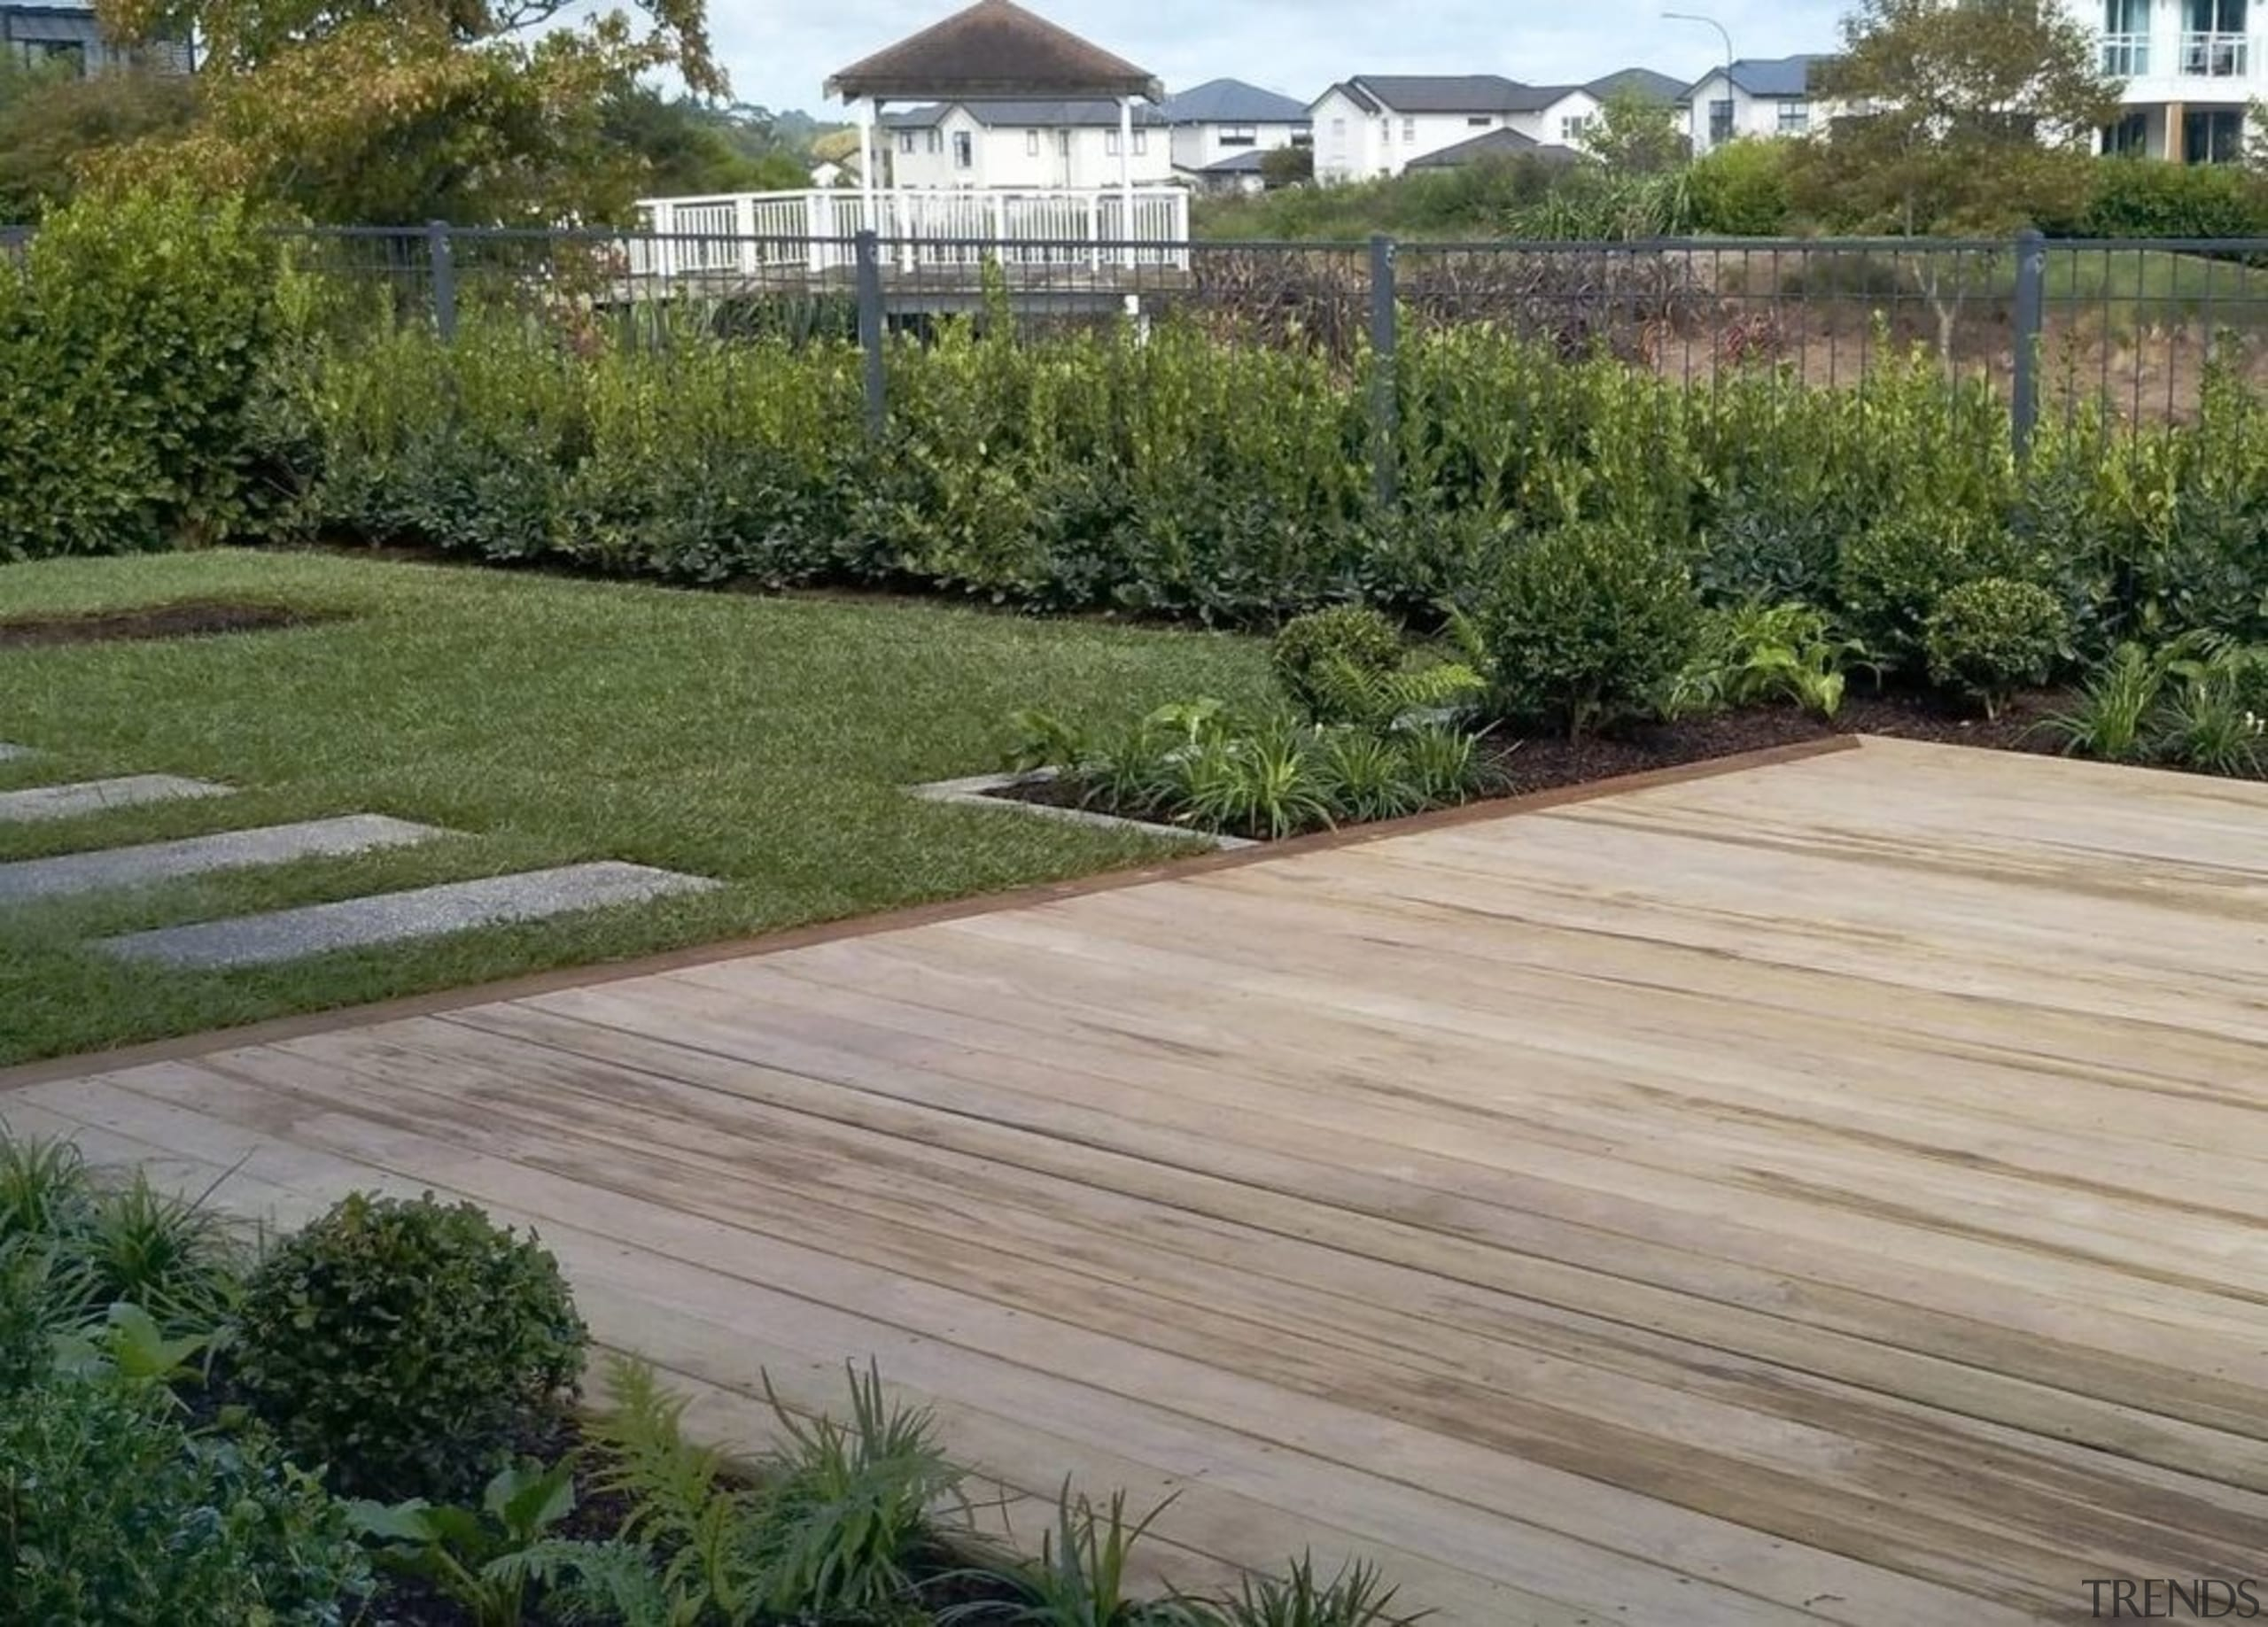 Experienced landscapers will draw on both practical and gray, brown